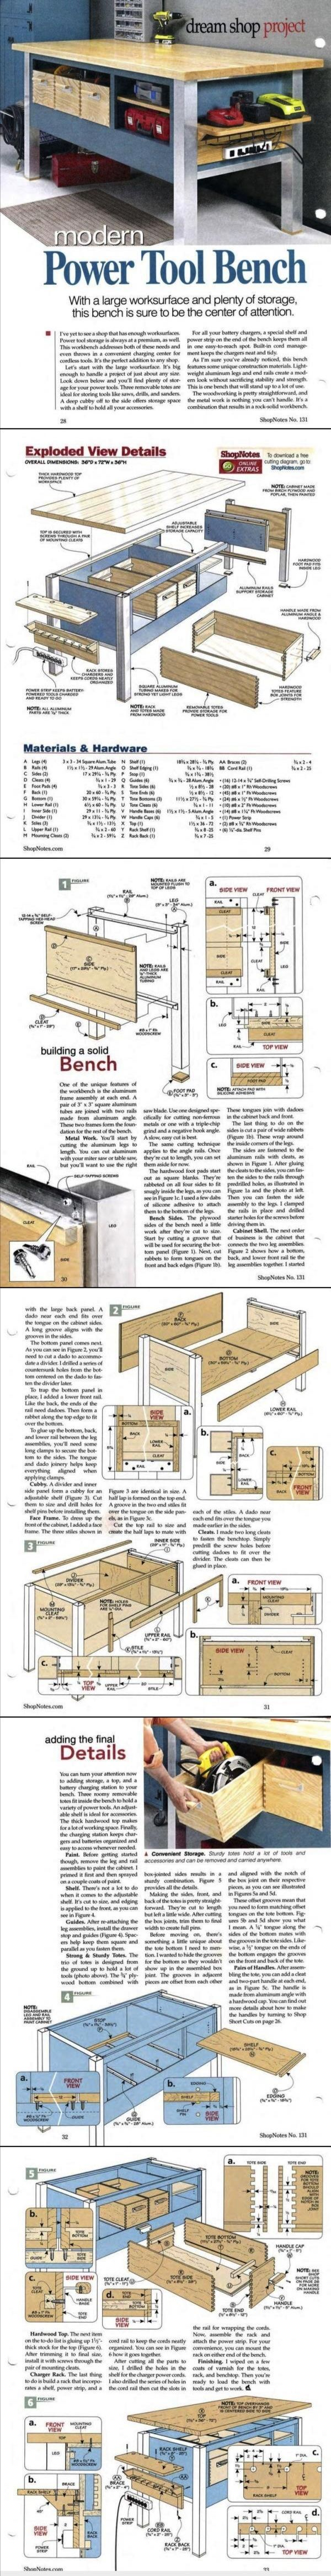 When you are looking for terrific tips regarding wood working, then http://www.woodesigner.net will be able to help!